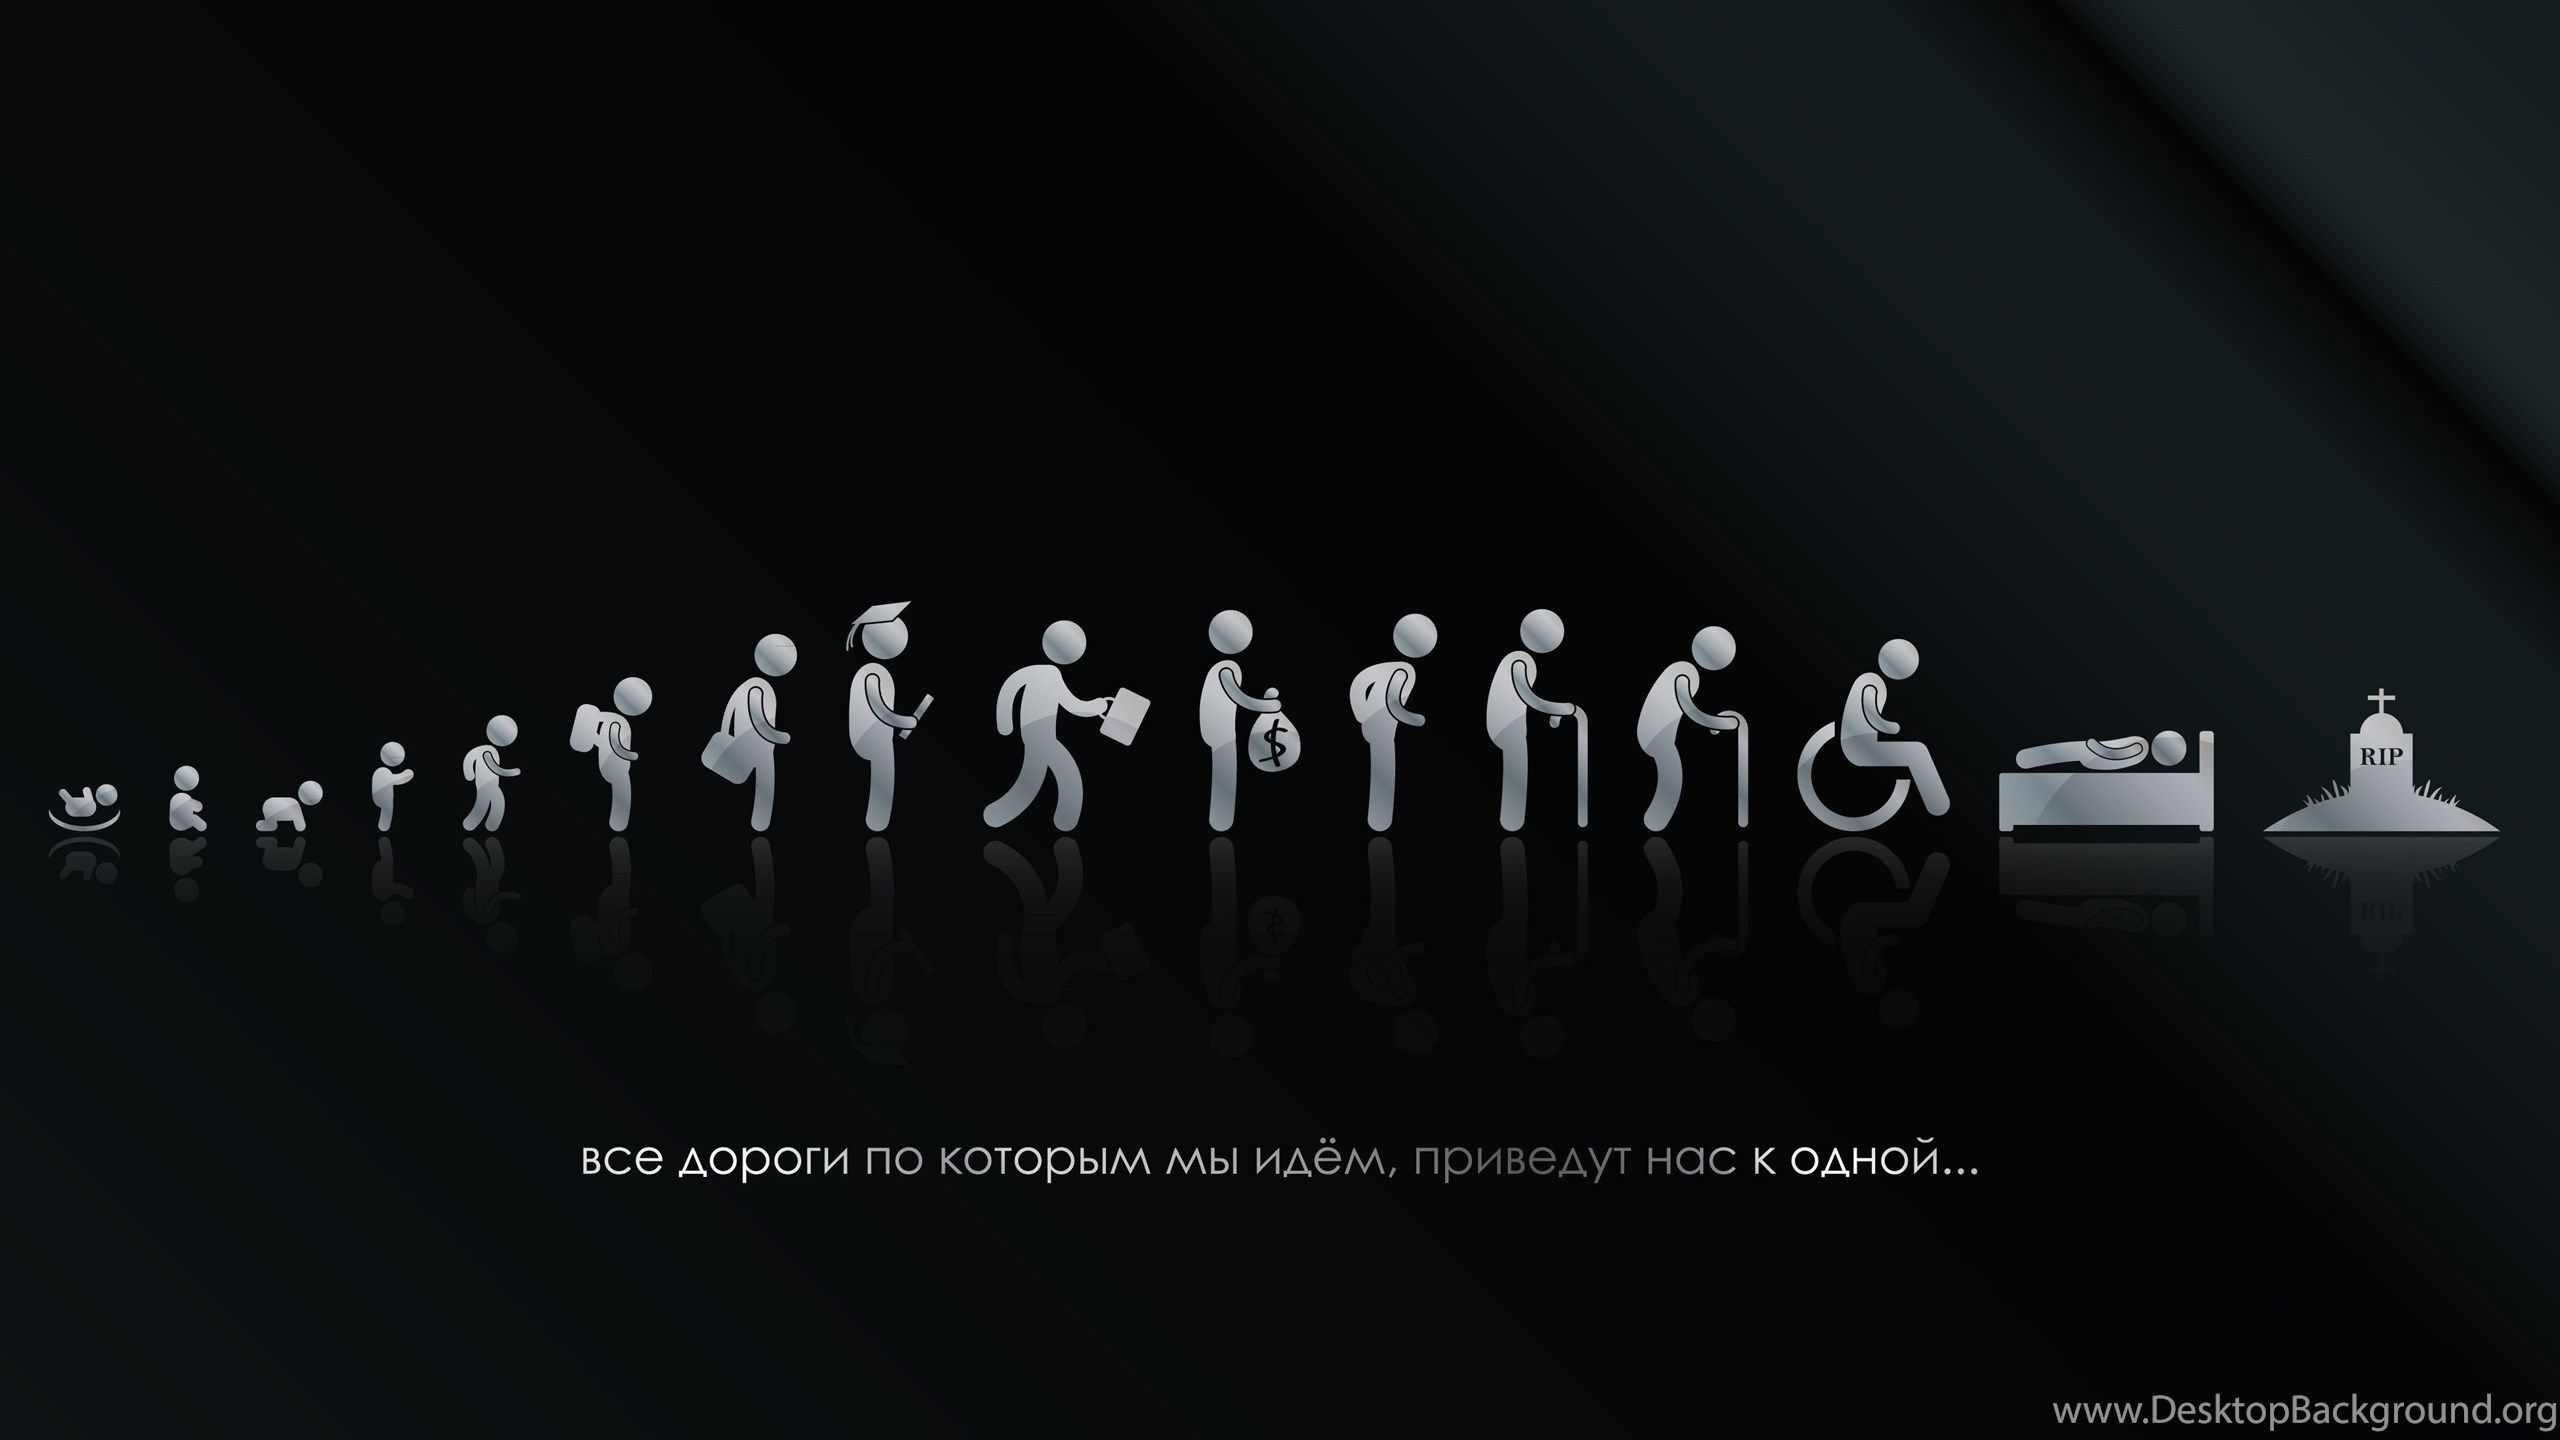 Funny Office Wallpaper images in Collection Page